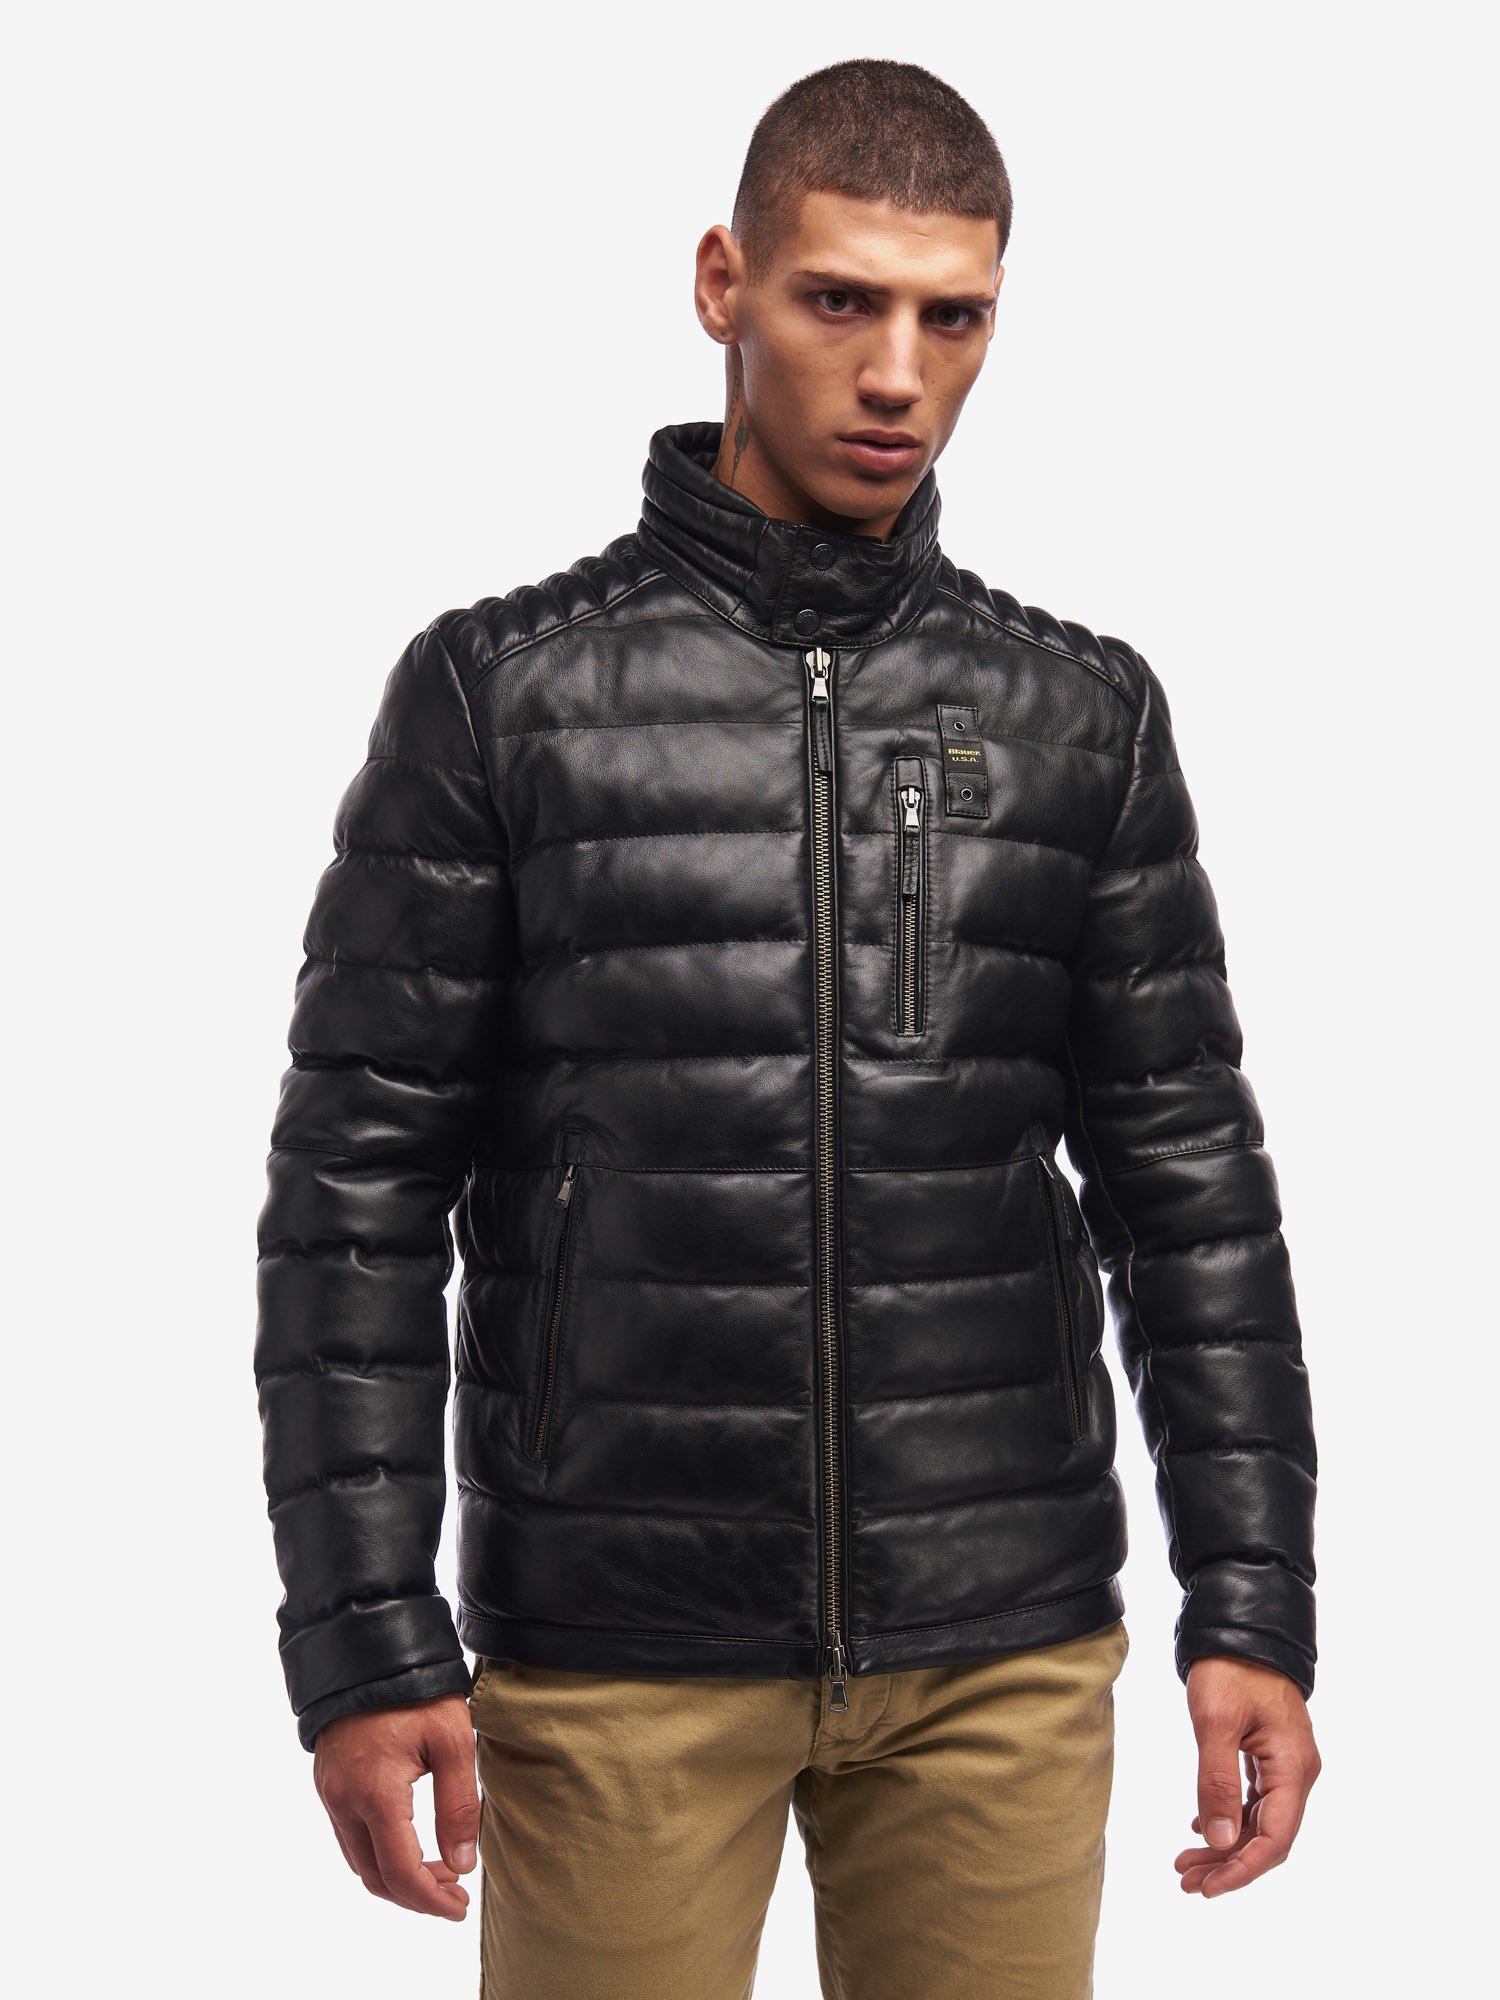 HUGHES PADDED LEATHER JACKET - Blauer